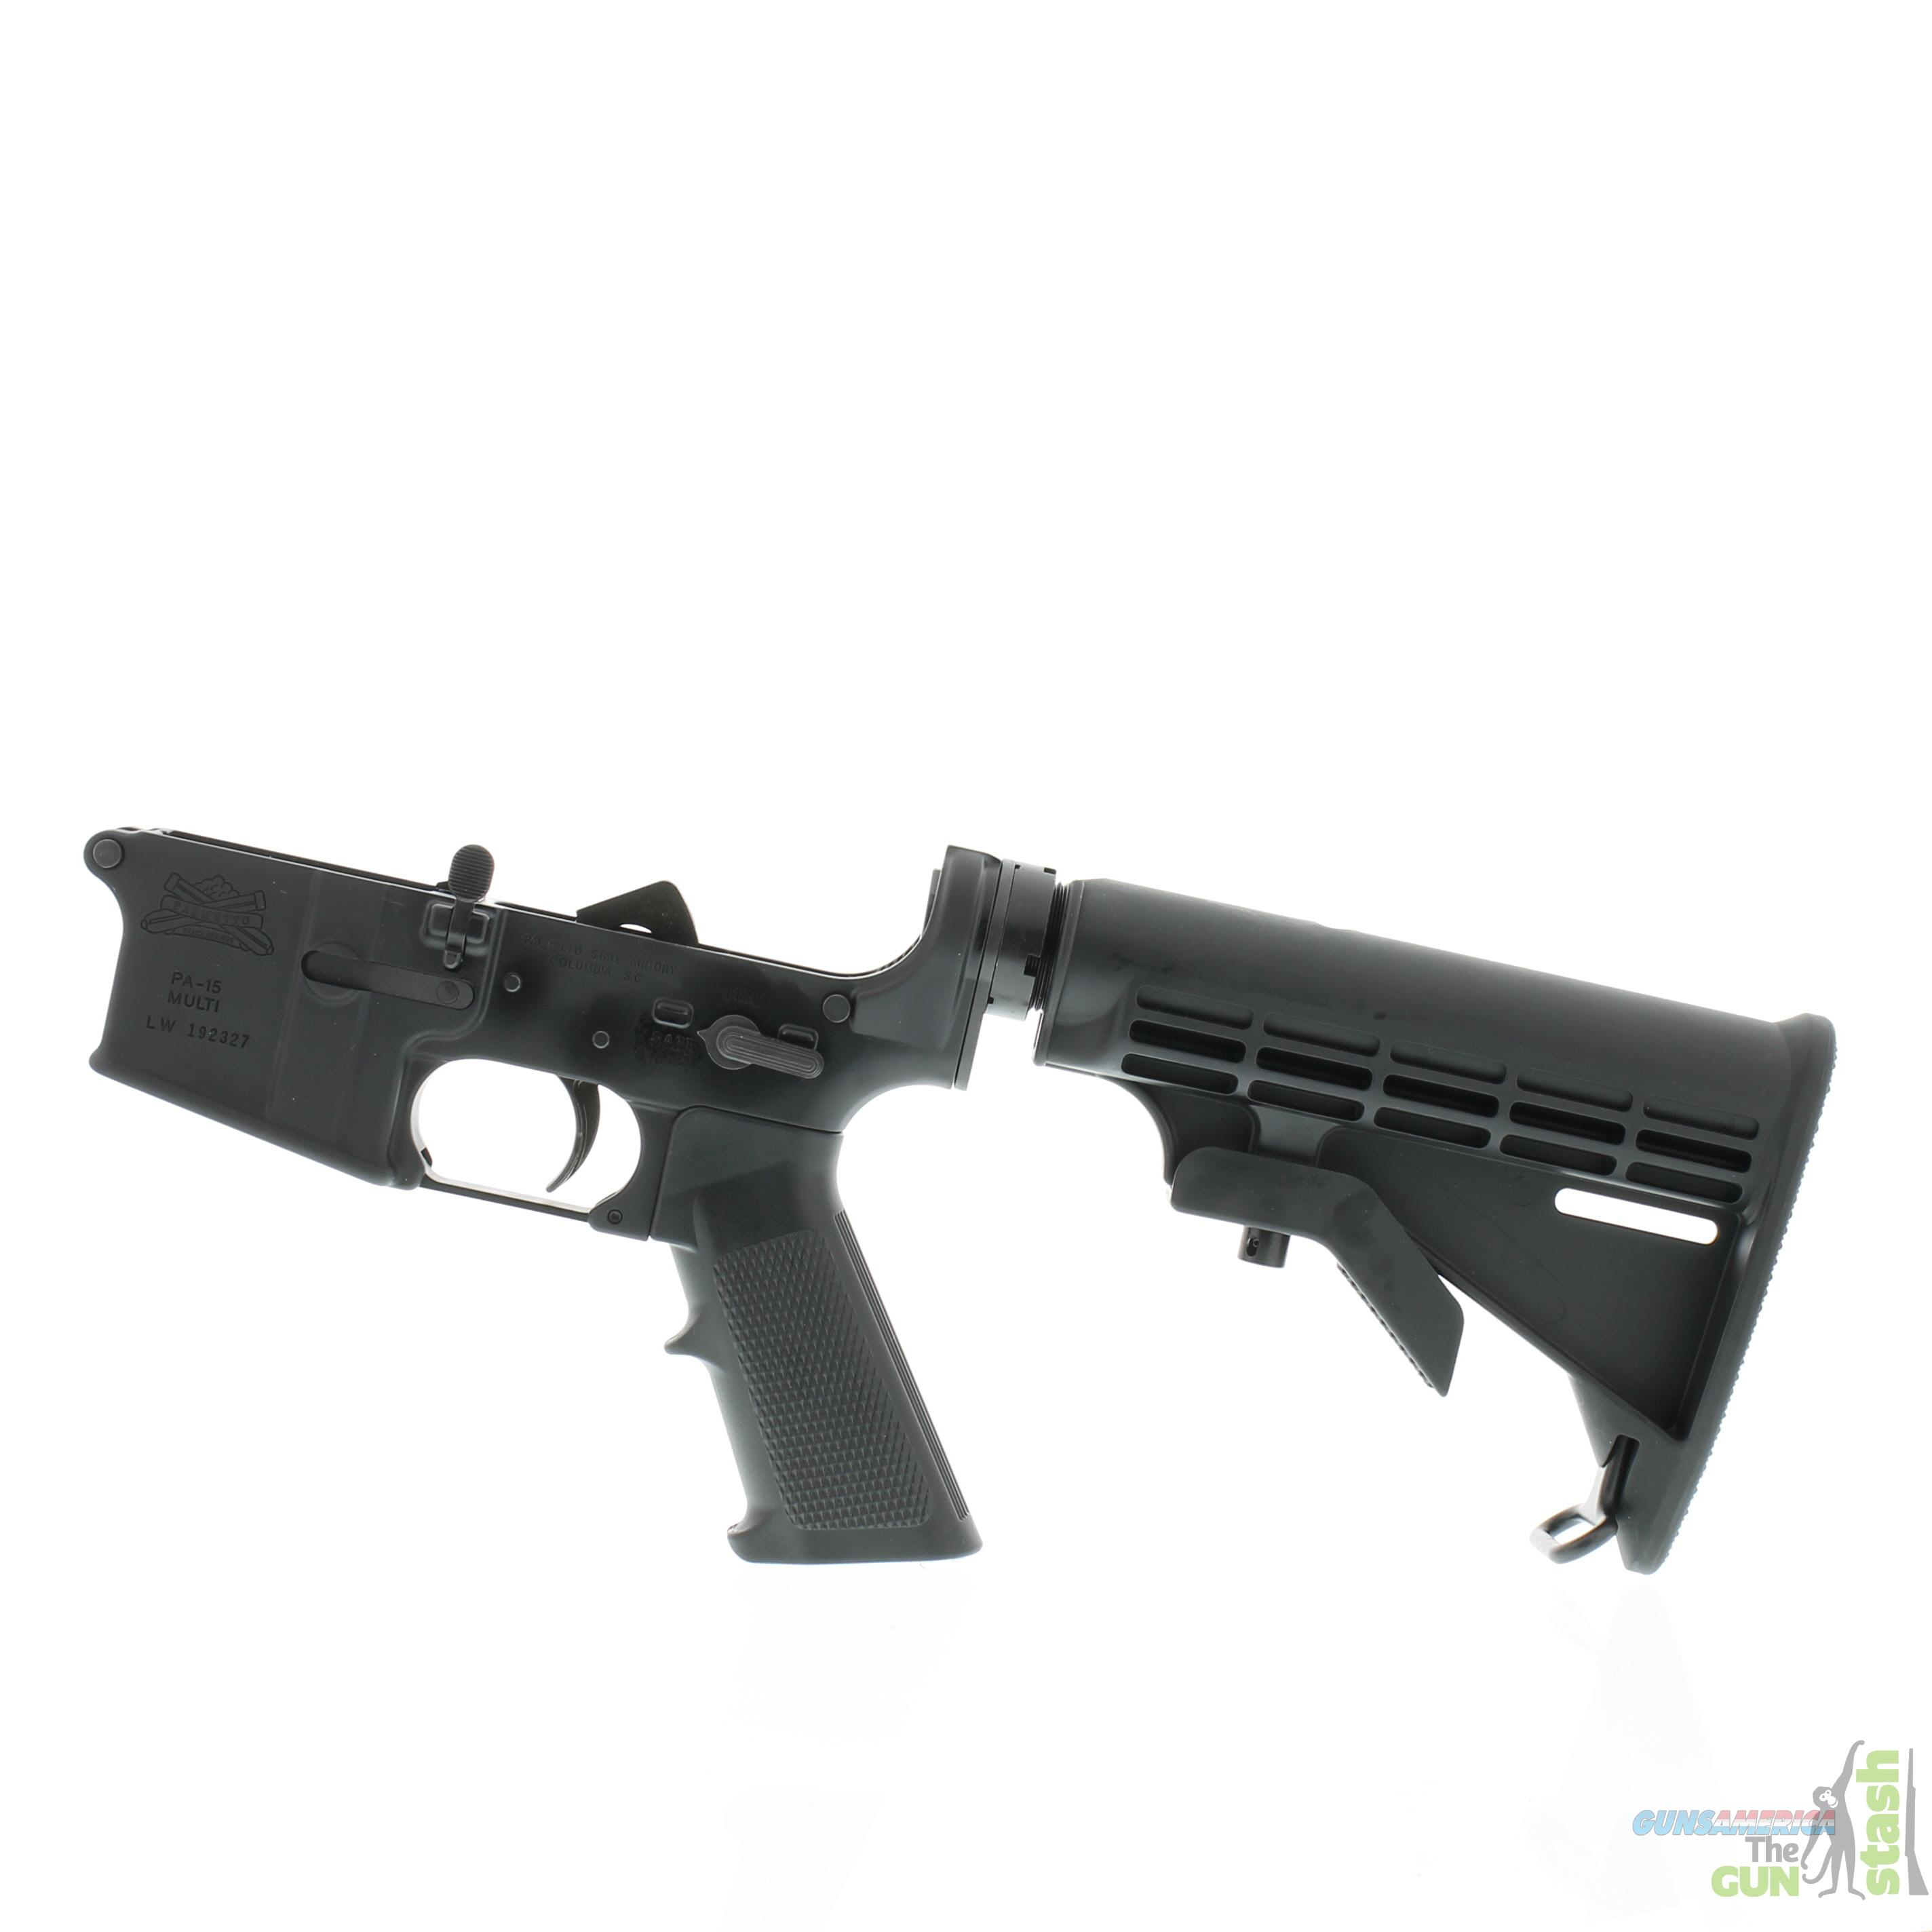 Palmetto State Armory AR-15 Completed Lower Kit - Multi-Caliber  Guns > Rifles > AR-15 Rifles - Small Manufacturers > Lower Only